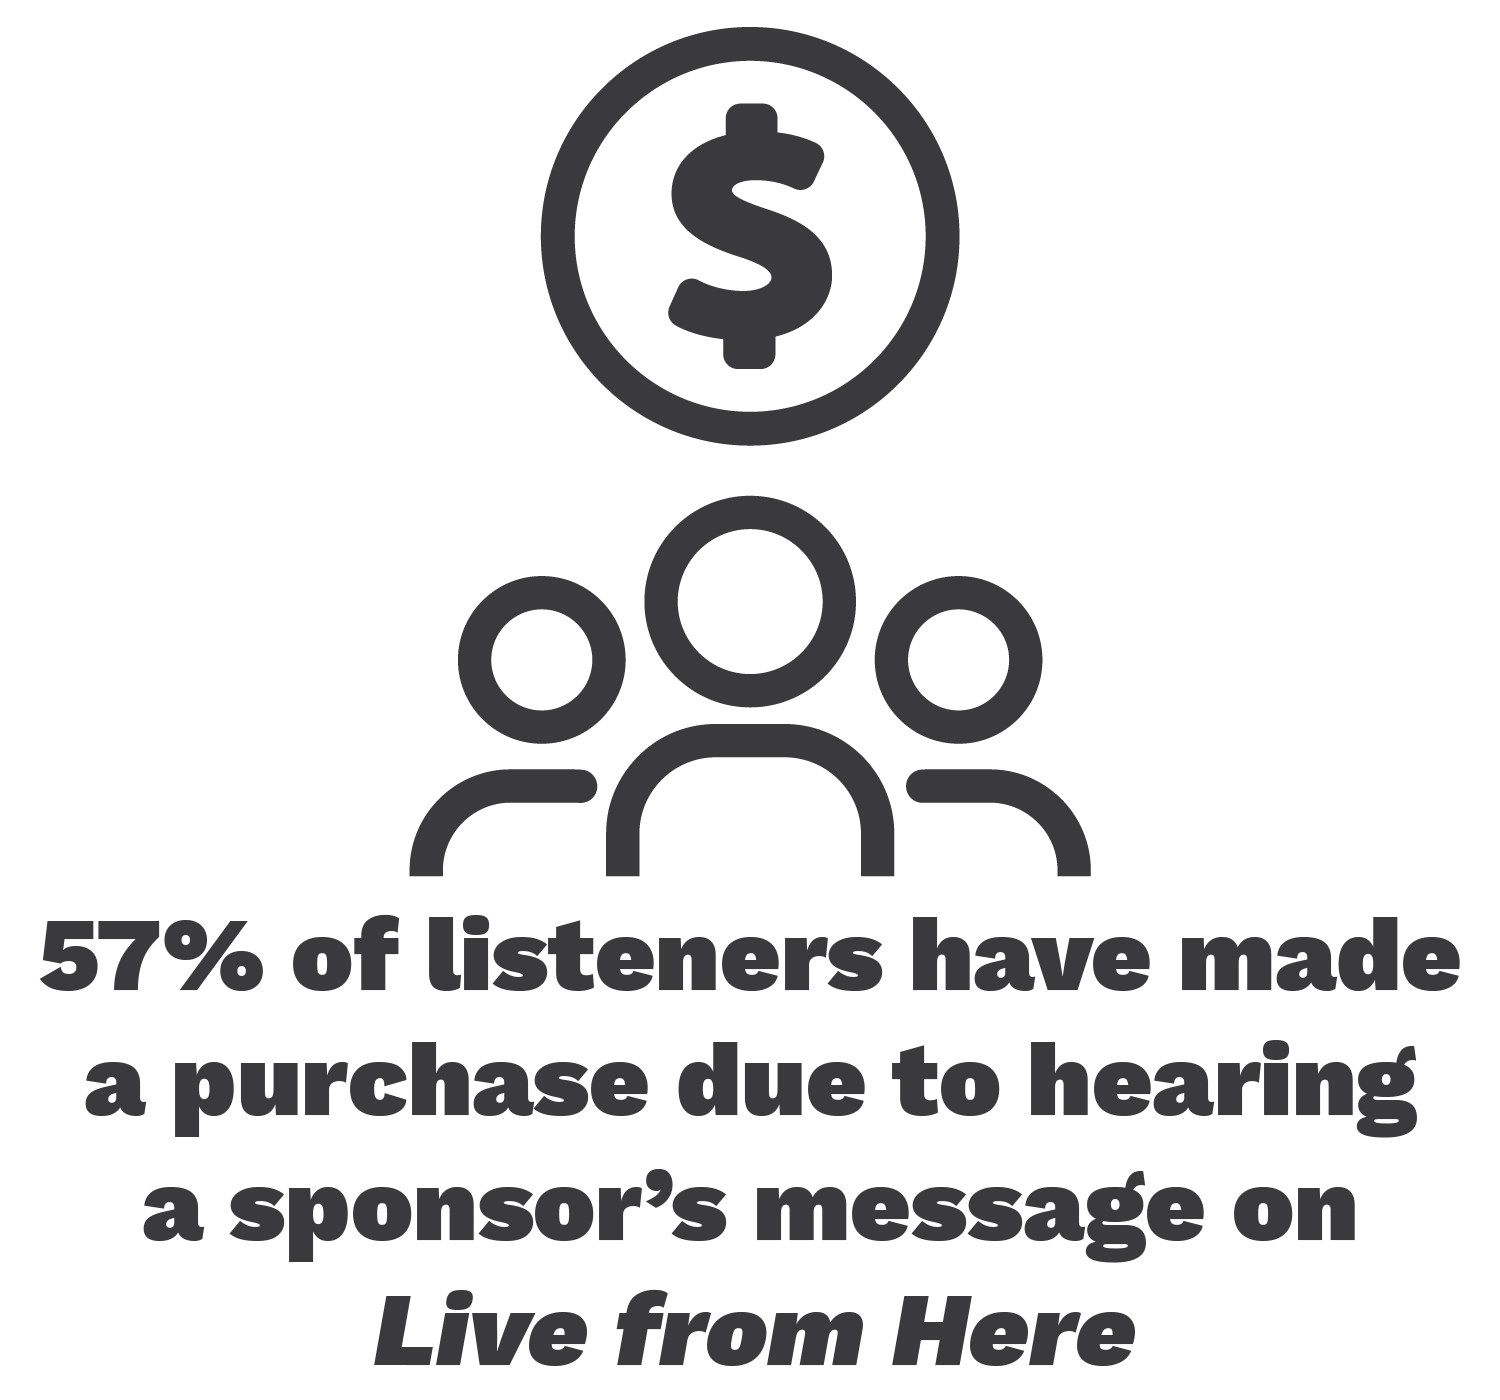 57% of listeners have made a purchase due to hearing a sponsor's message on Live from Here